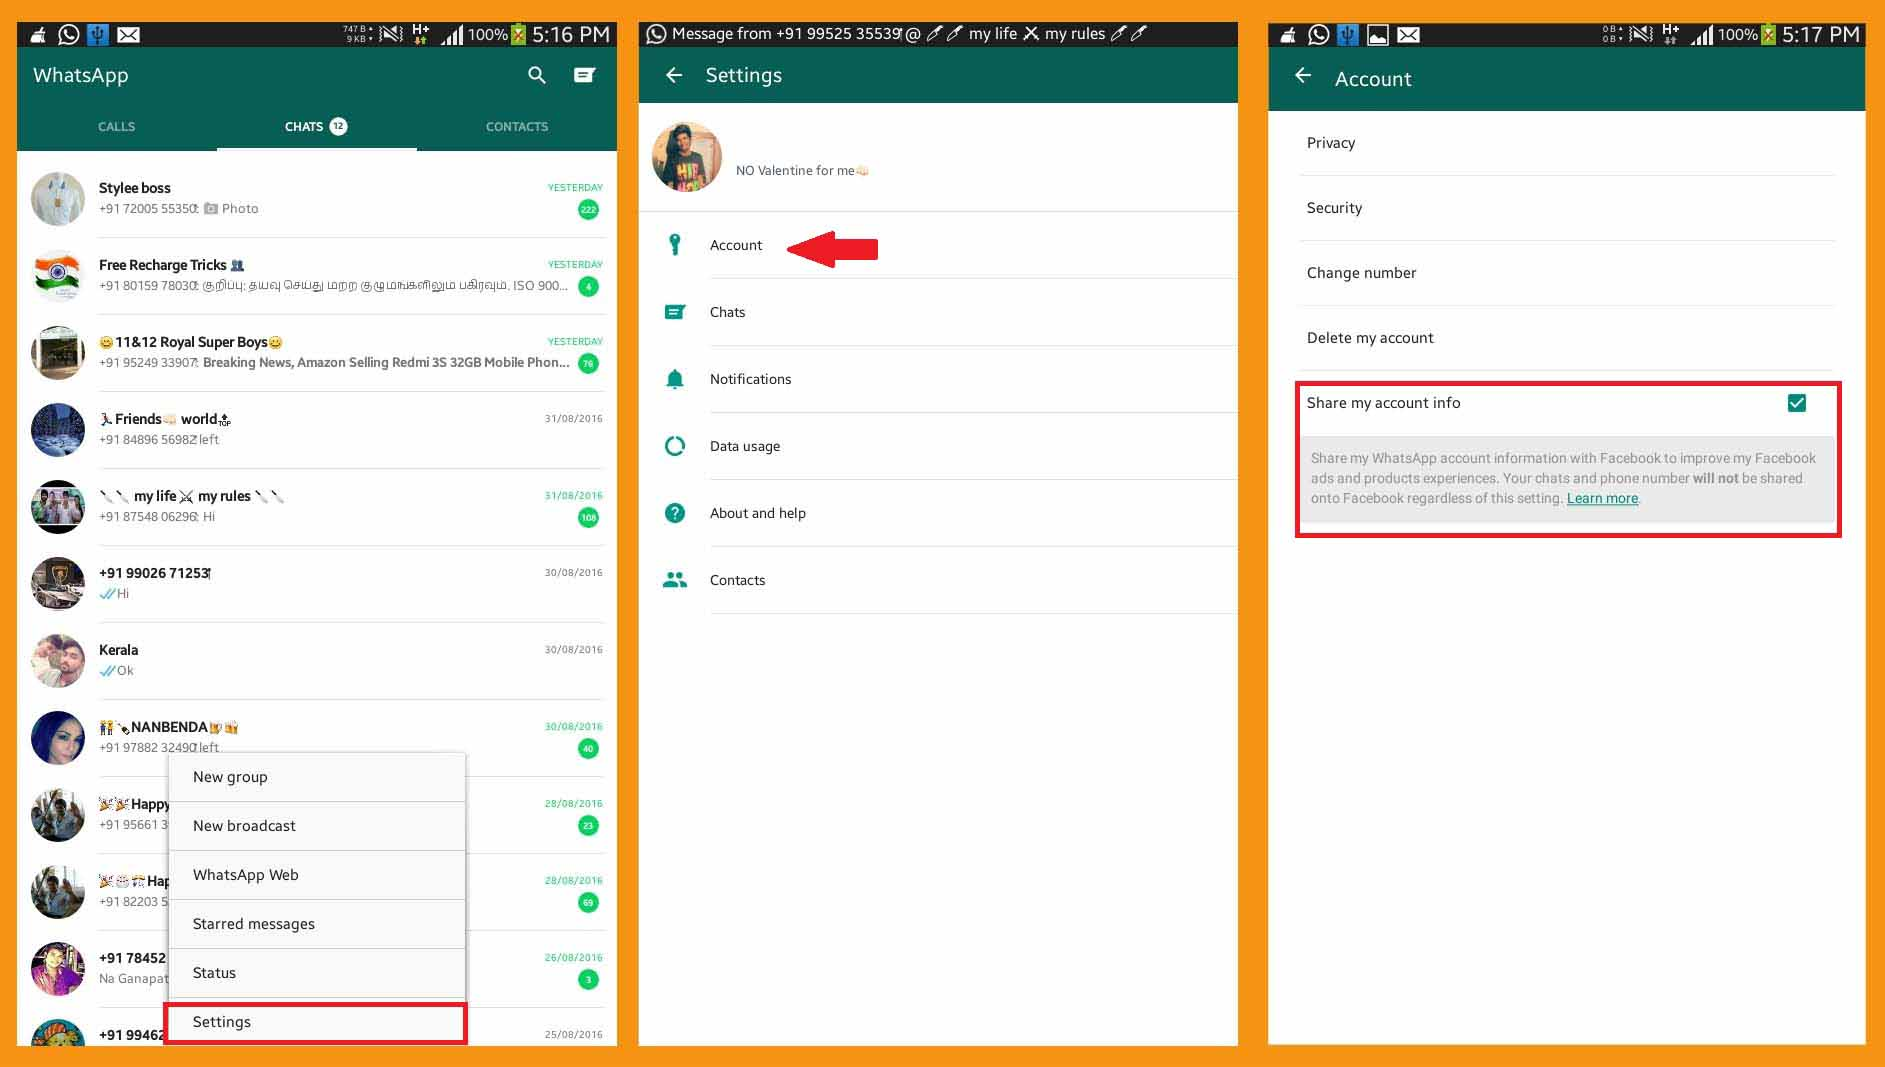 How to Change Your WhatsApp Settings Before Facebook Data Sharing Begins